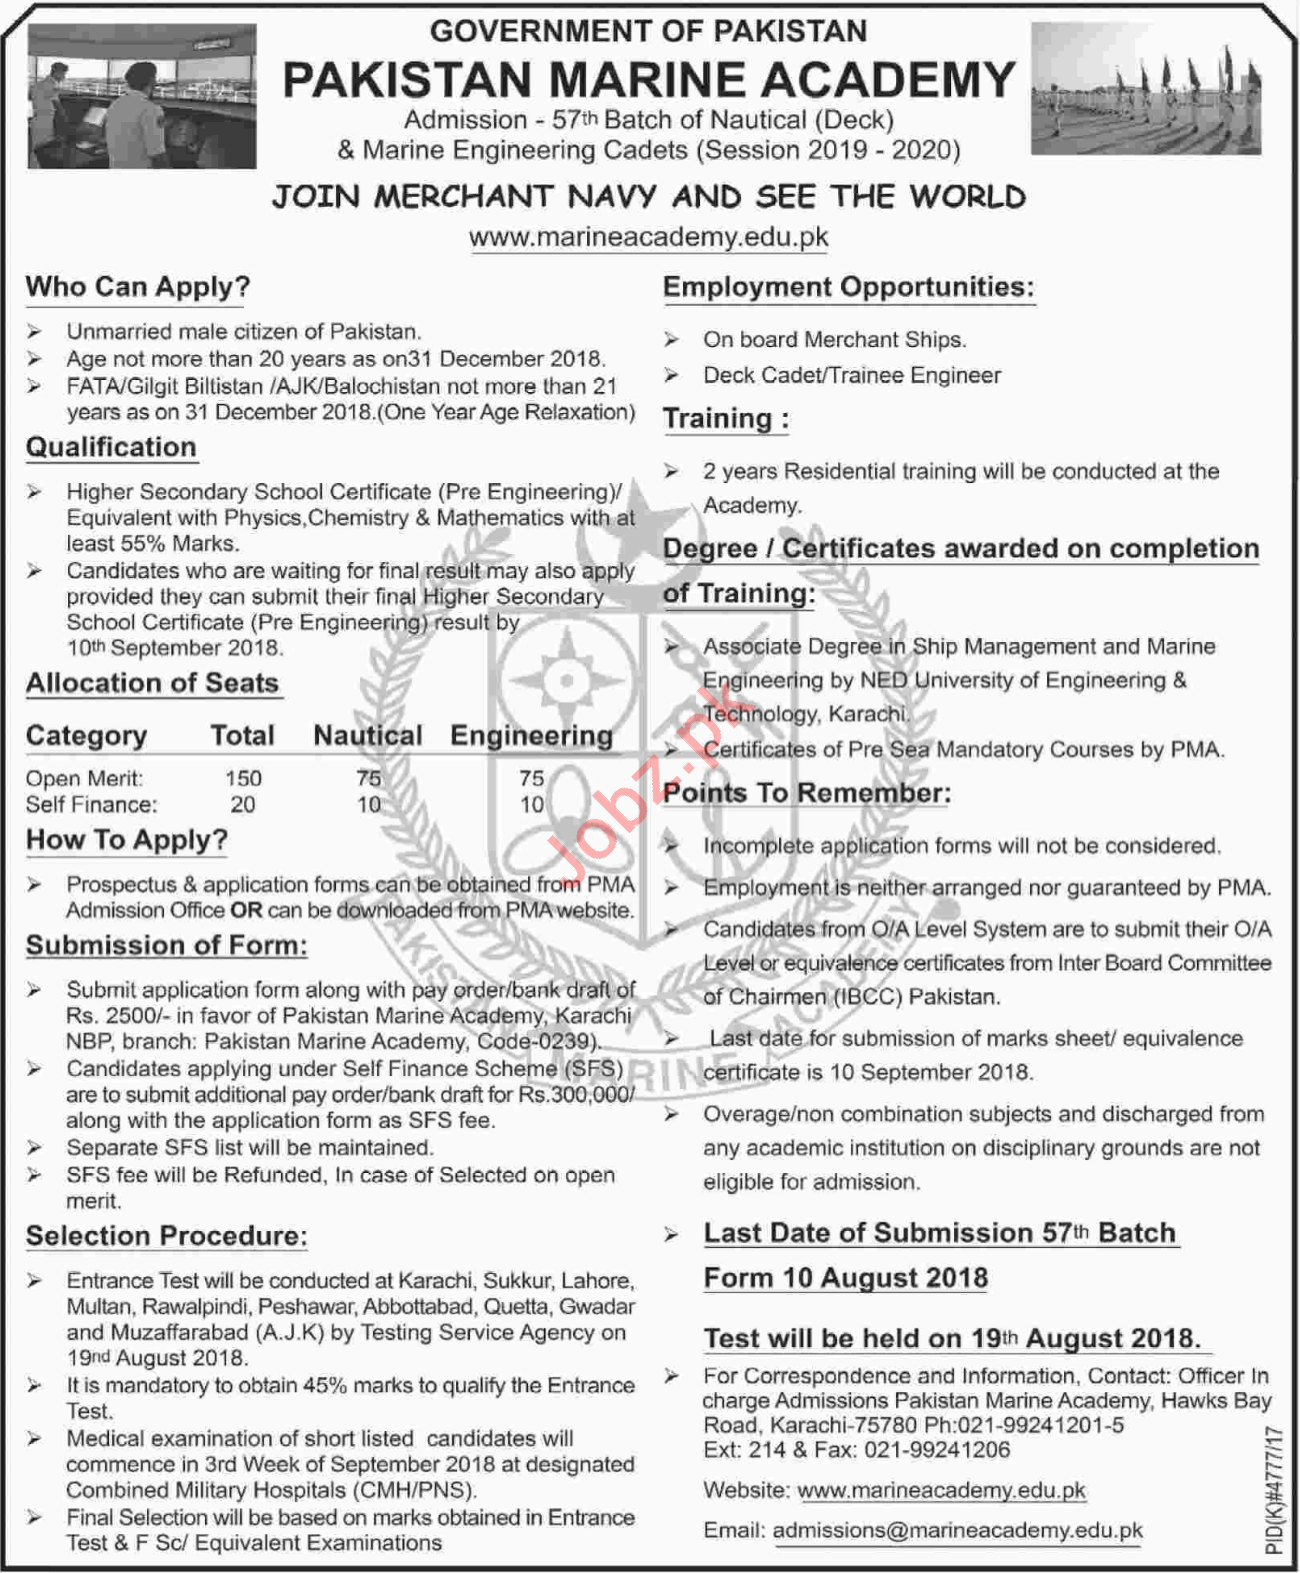 Join Merchant Navy June 2018